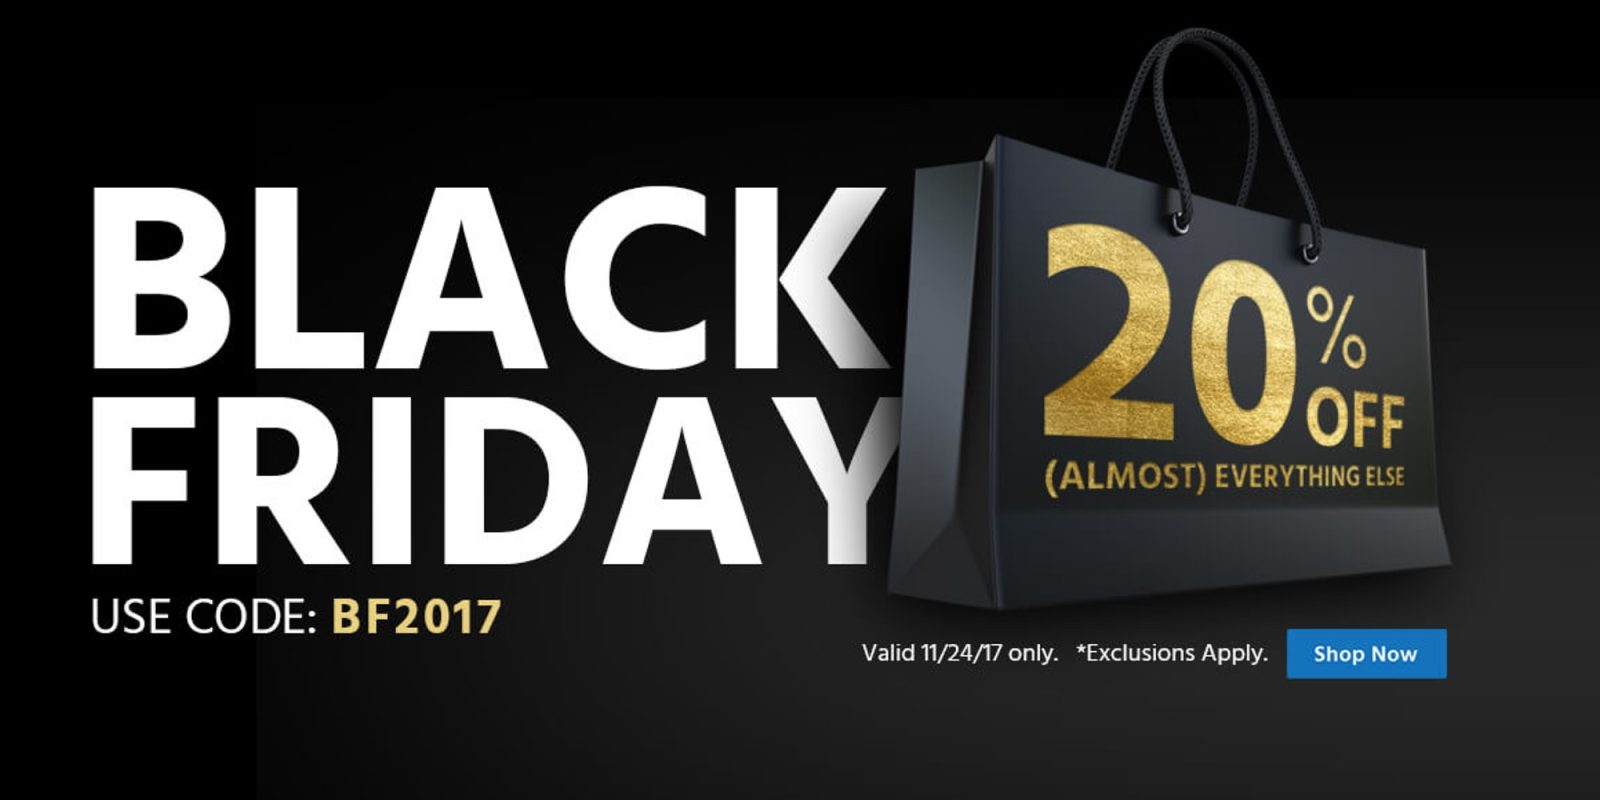 Monoprice Black Friday coupon code takes 20% off sitewide: cables